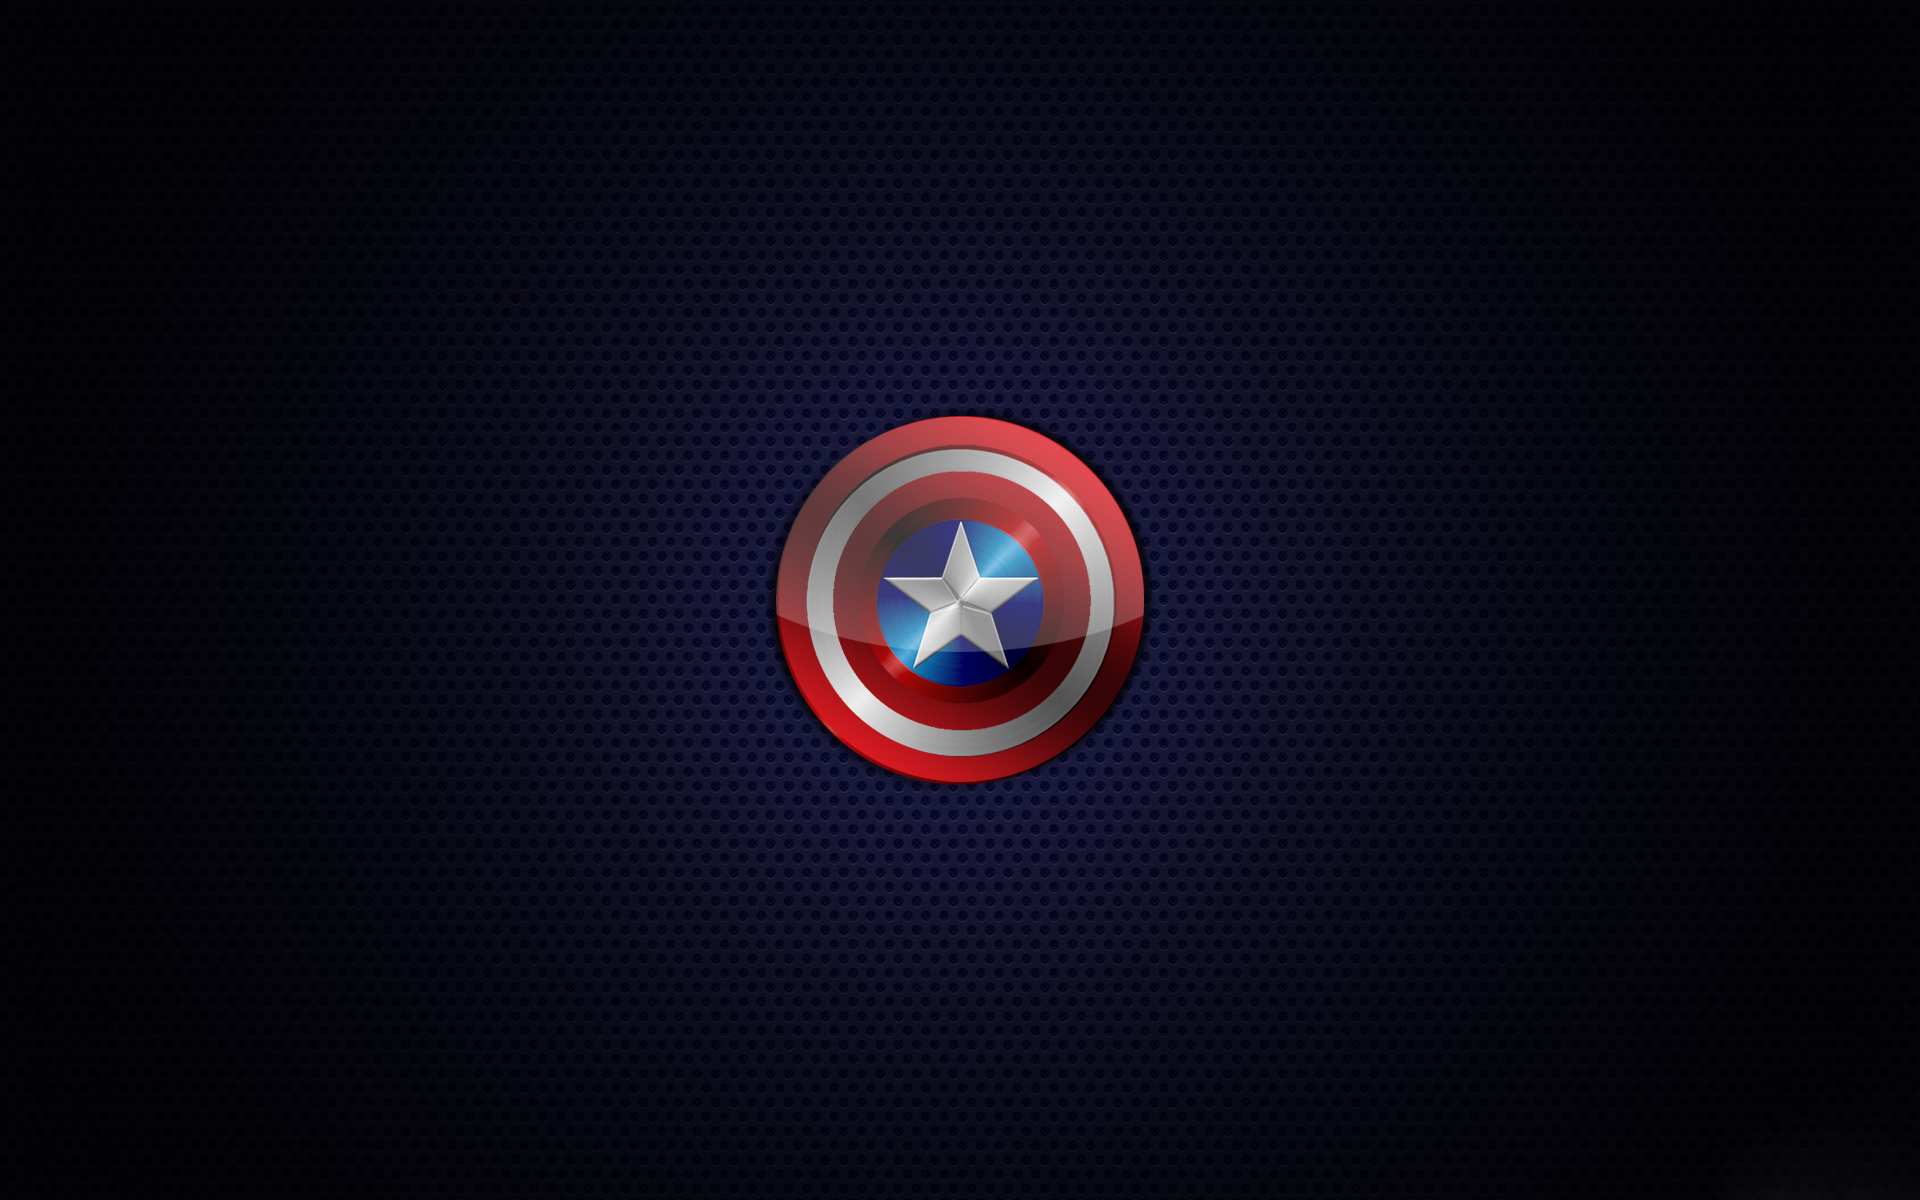 Hulk 3d Wallpapers Free Download Captain America Shield Backgrounds Pixelstalk Net